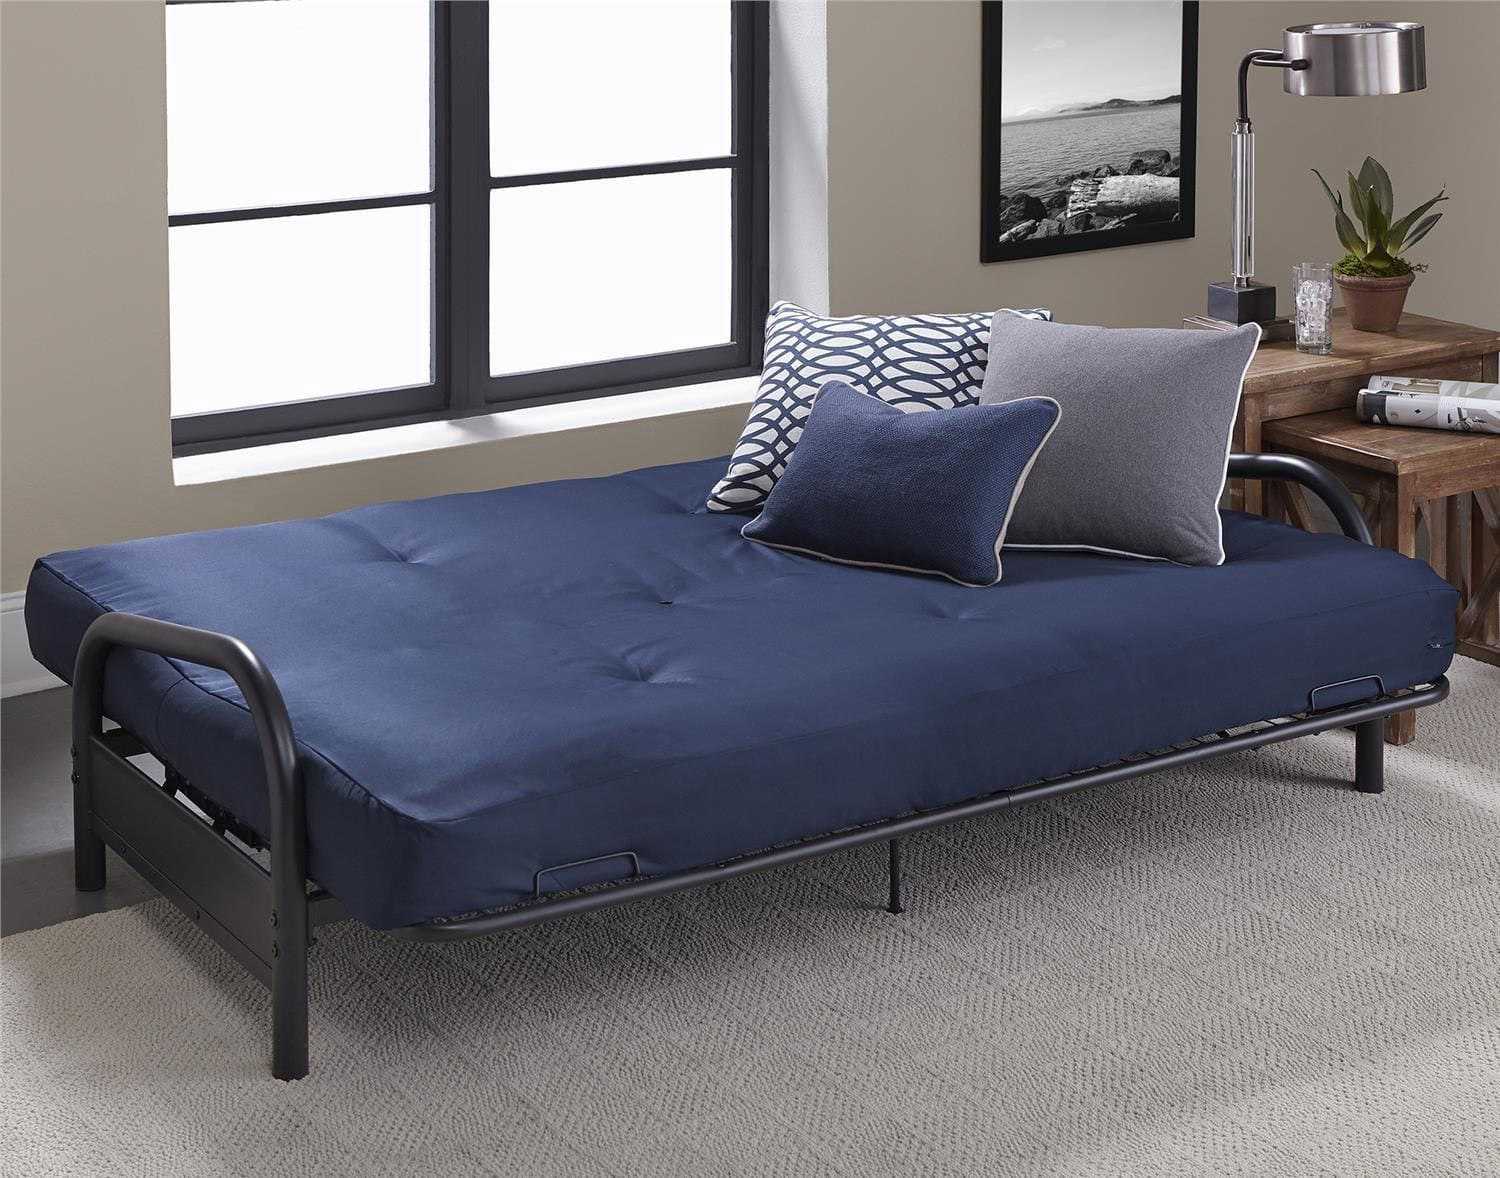 The Best Futon Mattress Brands And Ing Guide For 2019